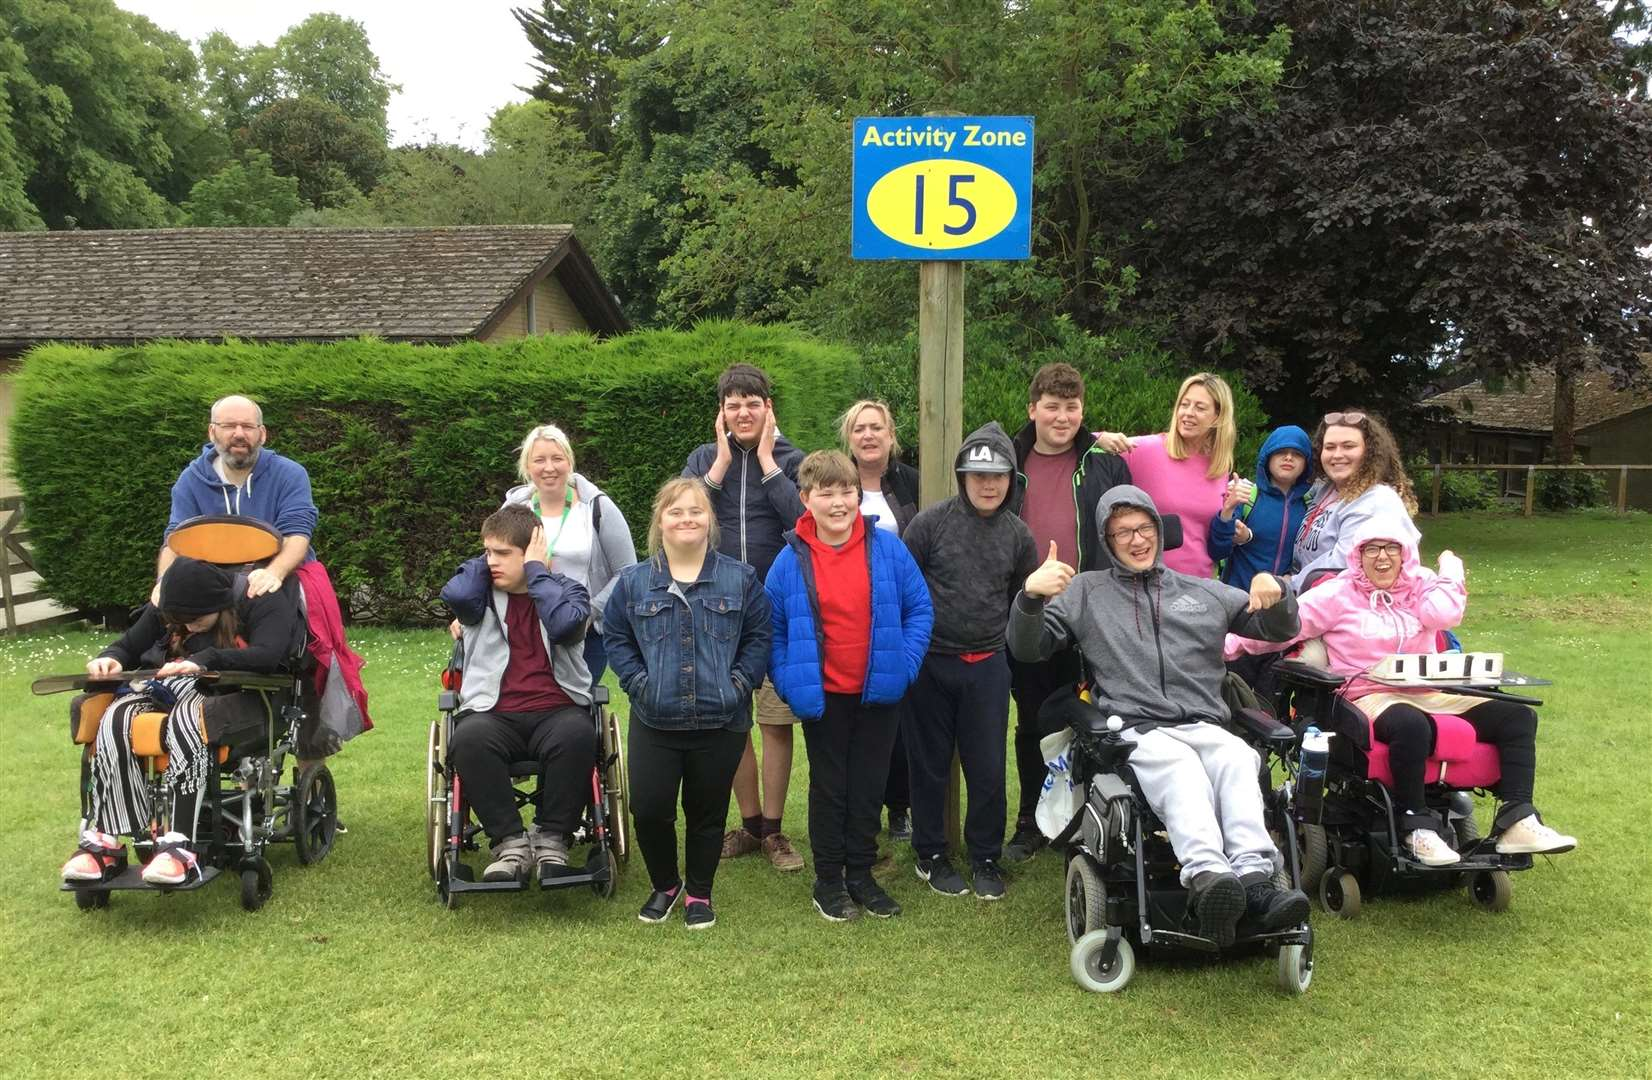 Pupils from Bourne's Willougby School on a residential trip, sponsored by the Rotary Clubs of the Deepings and Bourne